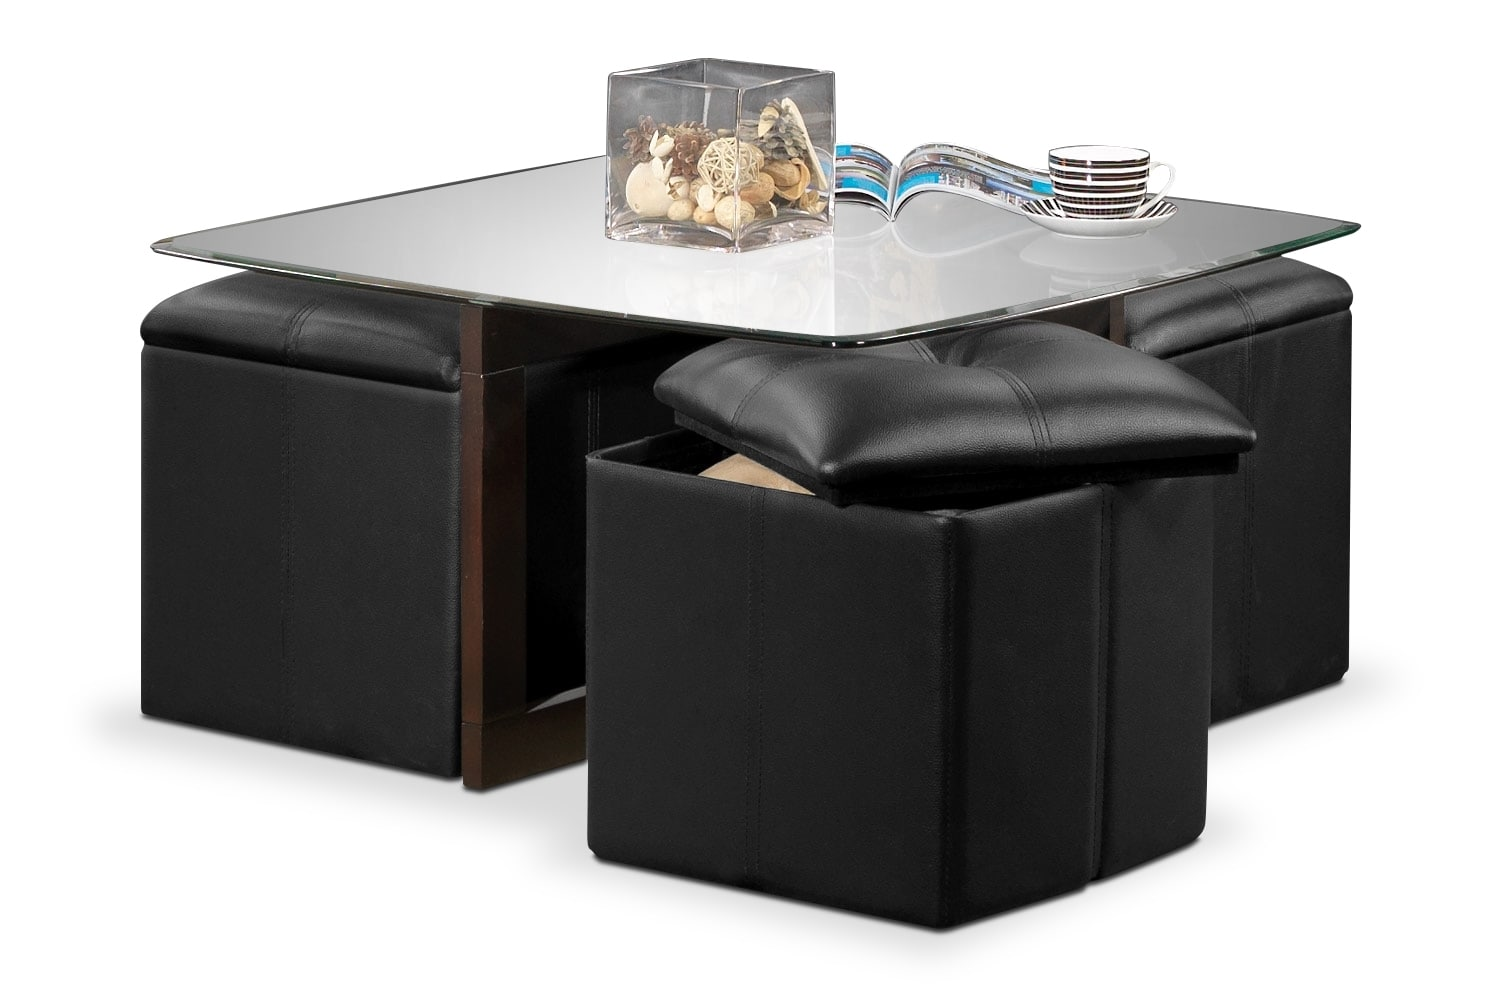 Neera Coffee Table w/ Four Ottomans - Black